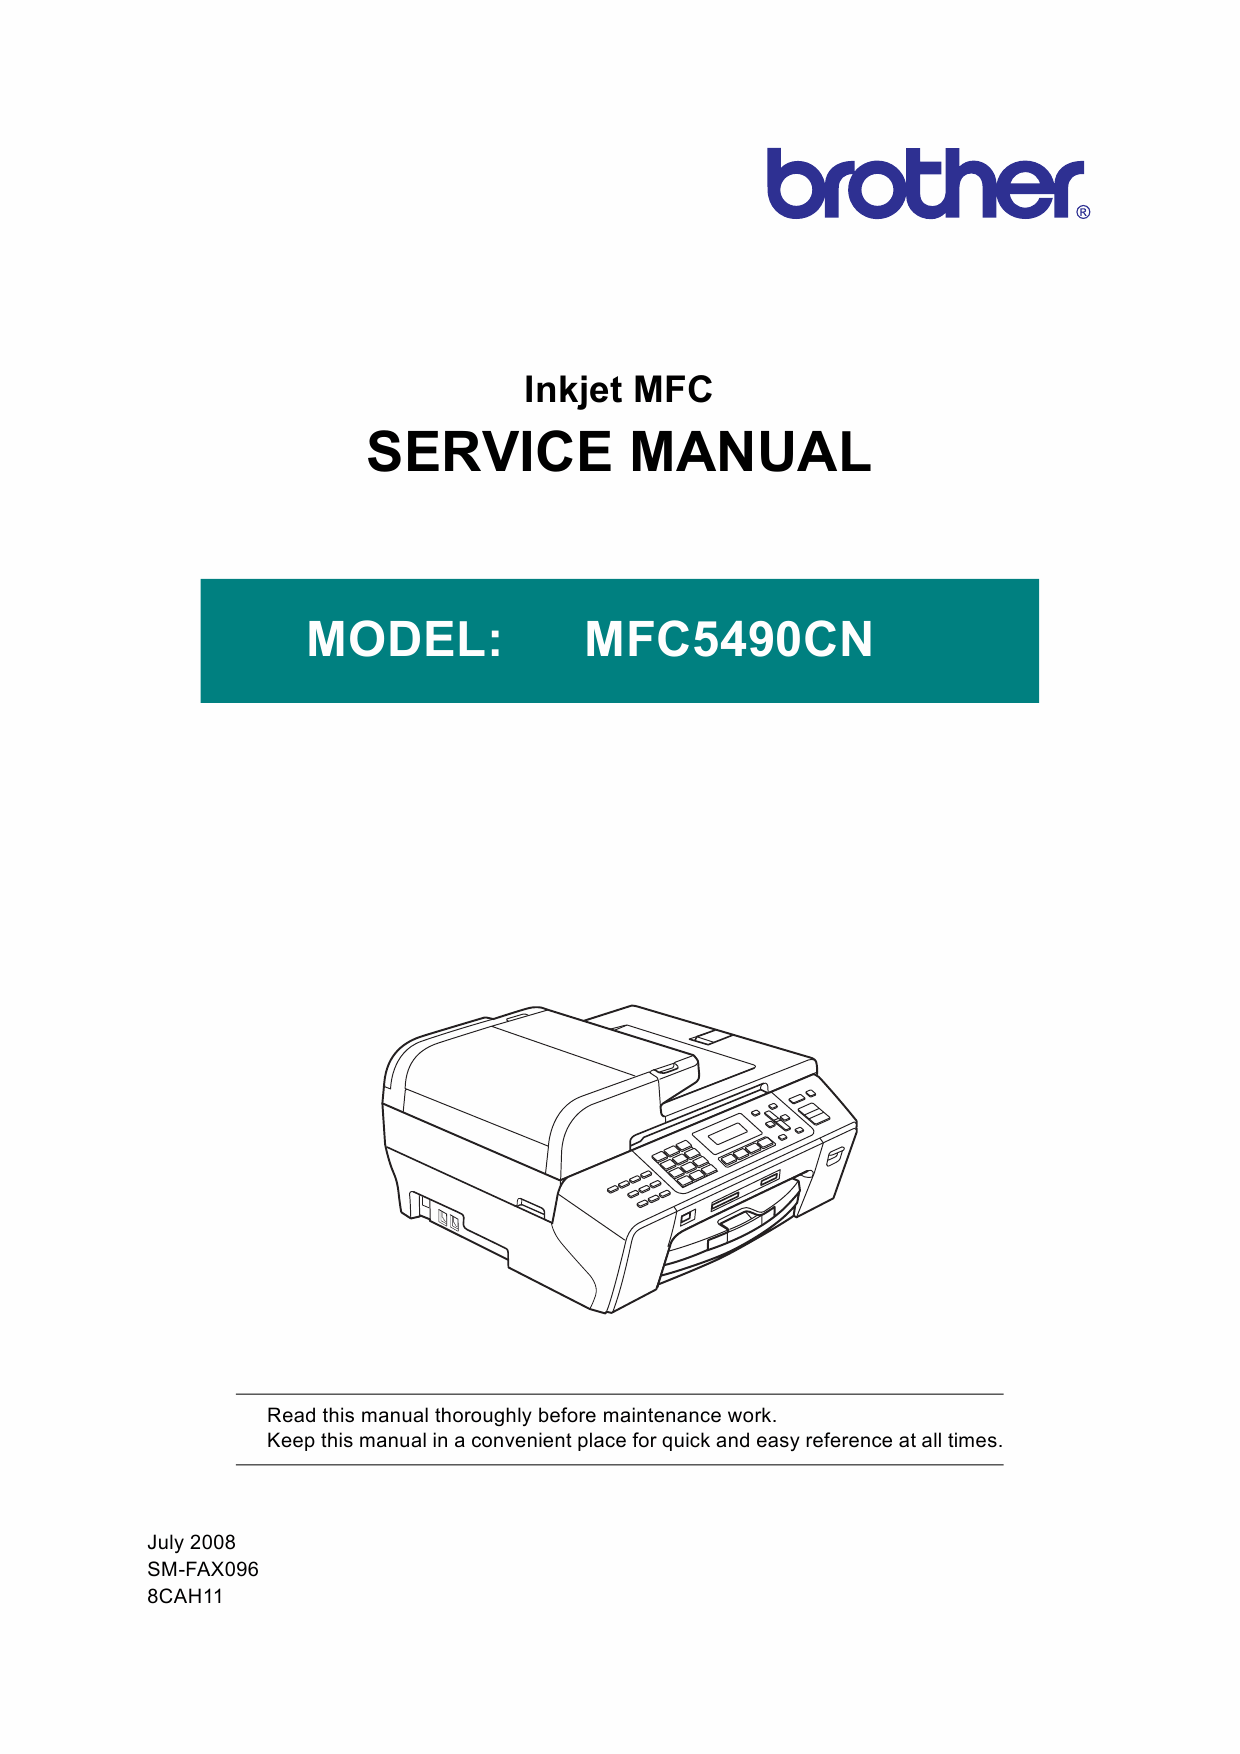 Brother Inkjet-MFC 5490CN Service Manual and Parts-1